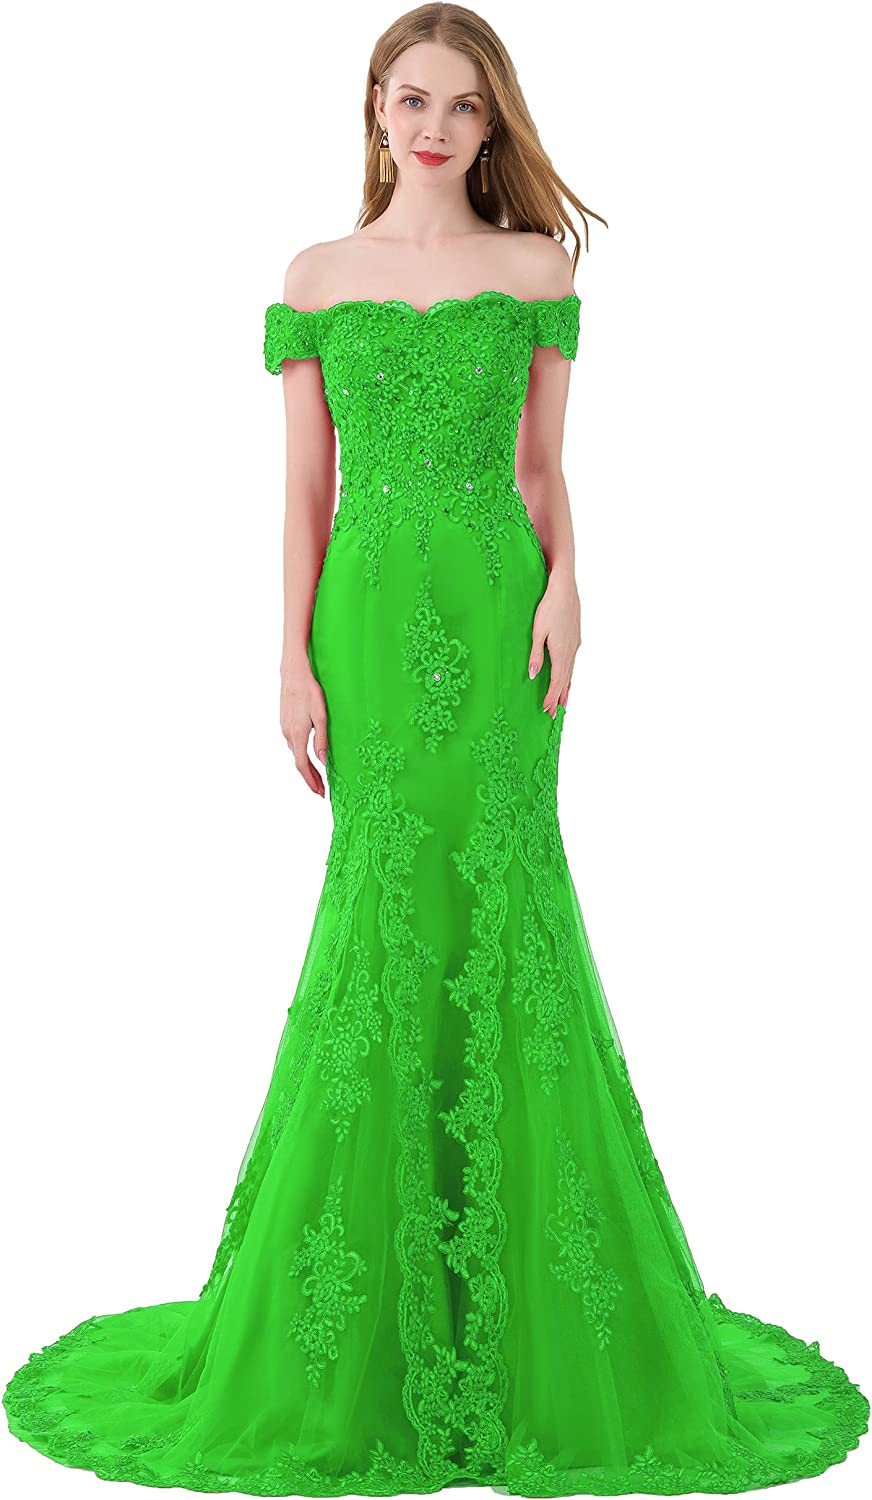 Scarisee Mermaid Off Shoulder Evening Party Prom Dress Lace Appliqued Beadeda111